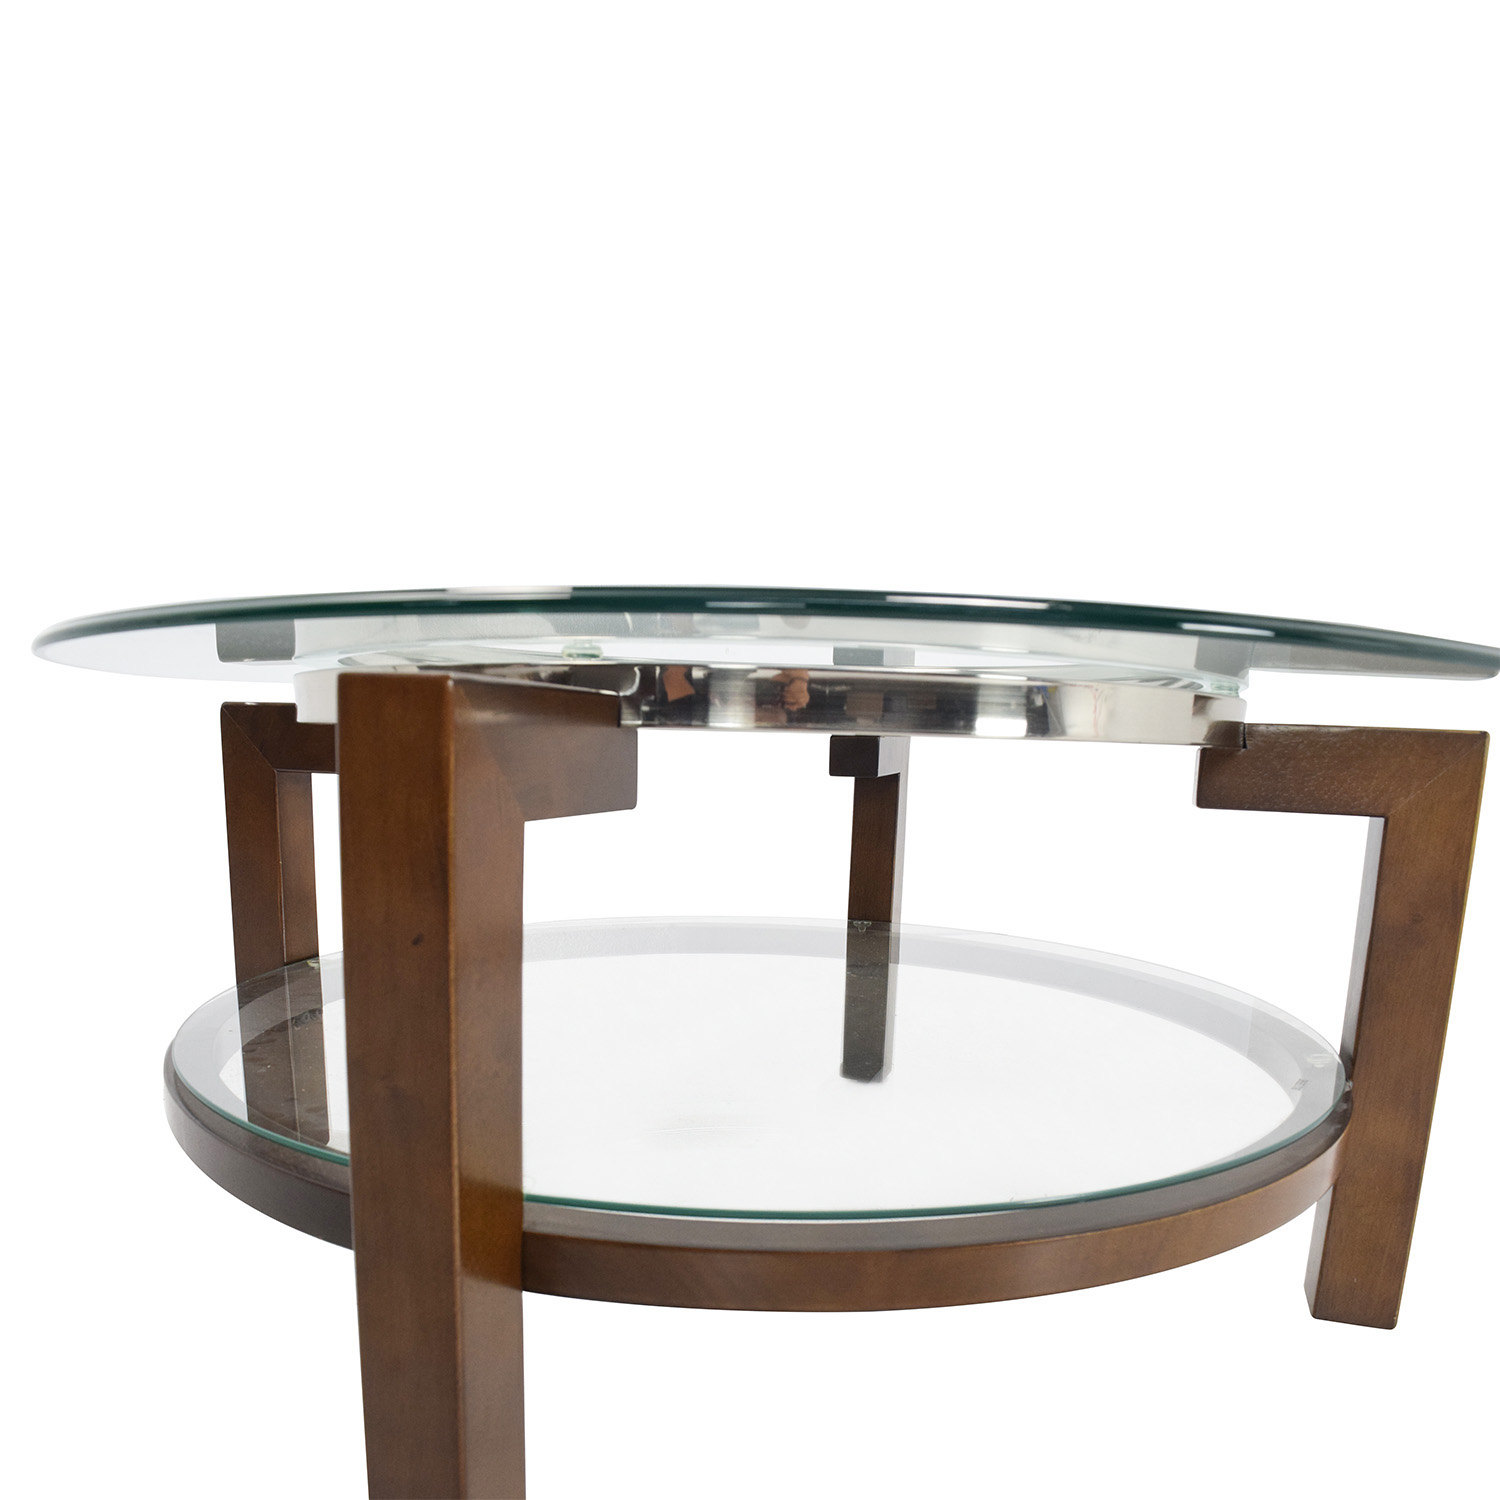 Coffee Tables Glass Top 88 Off Macy 39s Macy 39s Glass Top Coffee Table Tables